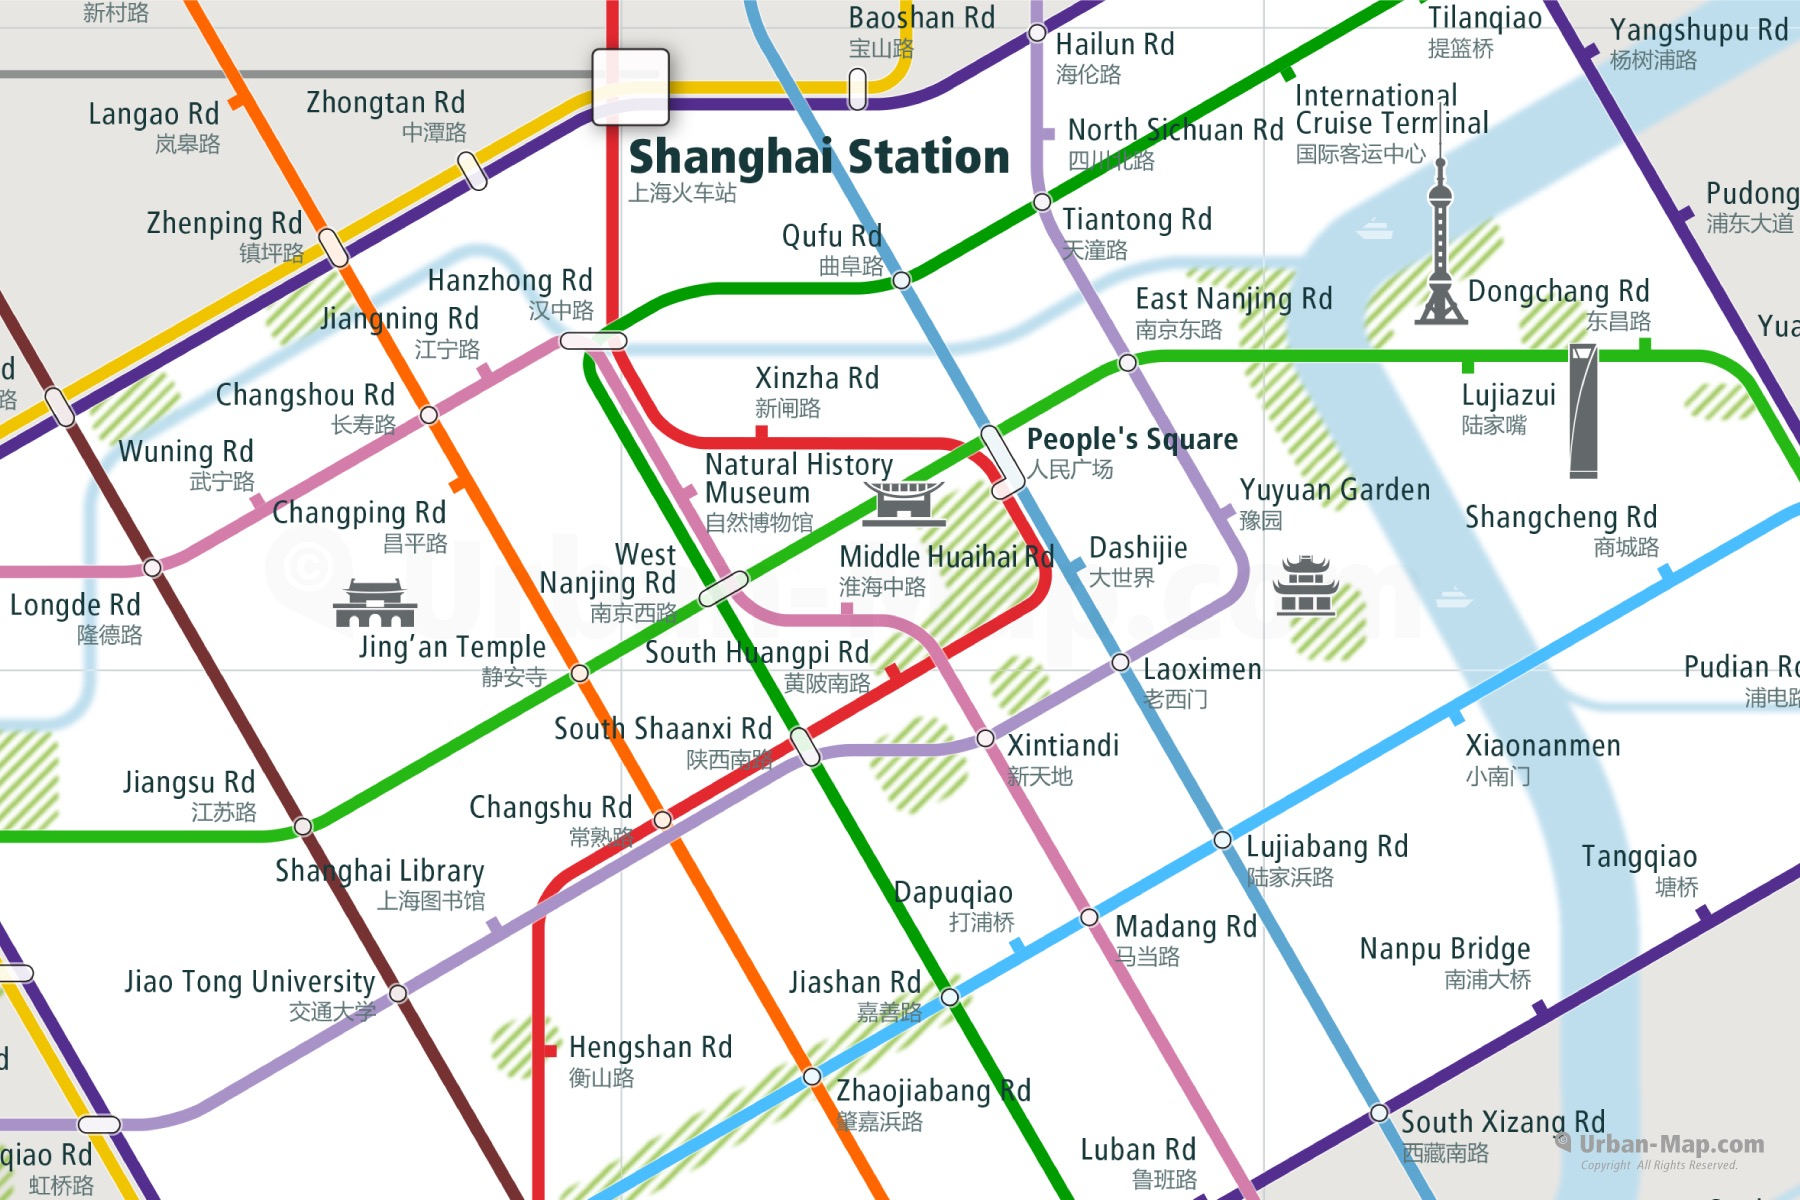 Shanghai City Rail Map shows the train and public transportation routes of Metro - Close-Up